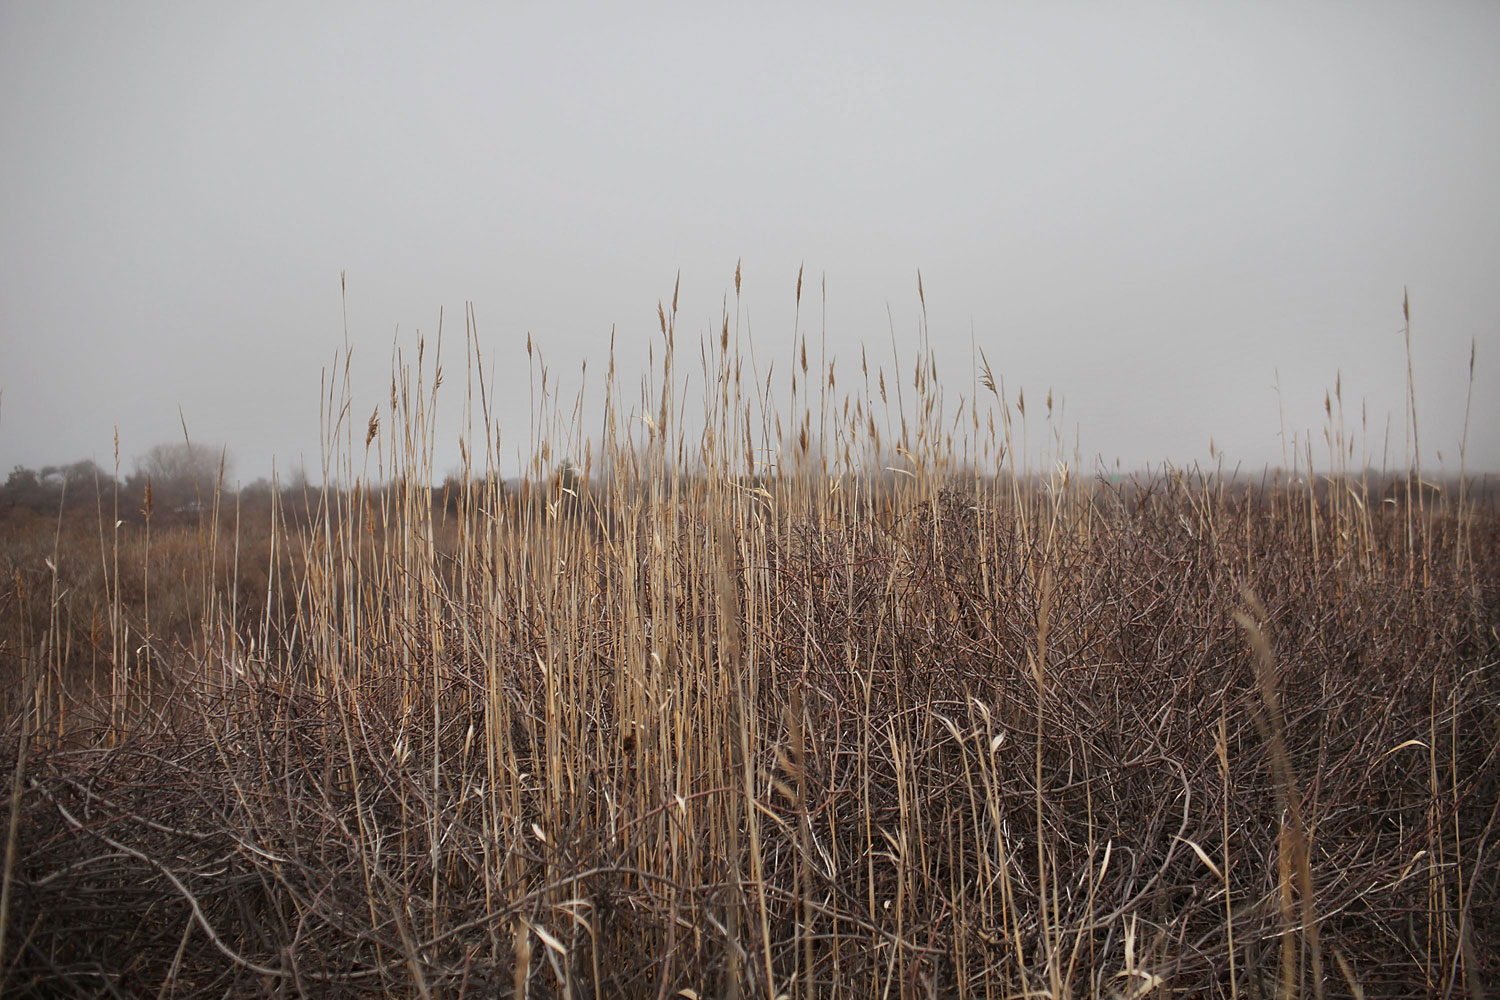 April 11, 2011. Dense brush covers a section of Jones Beach island in Nassau County, N.Y., which is currently being searched by police for human remains. The police have reportedly found two new bodies, bringing the total to 10 found on Long Island. Police believe a single serial killer may be working in the New York area.